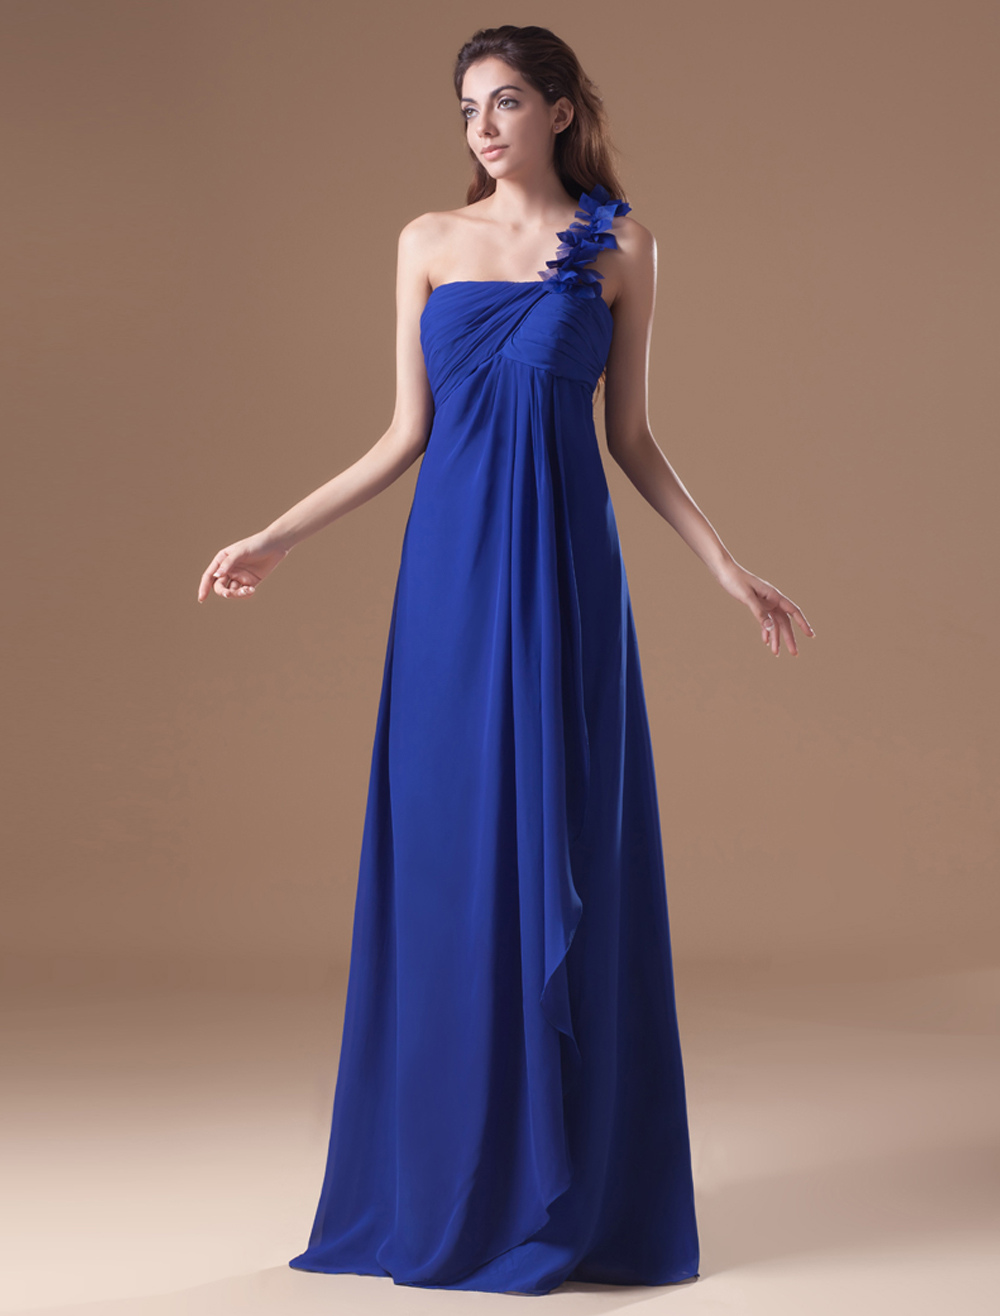 Buy A-line Chiffon Royal Blue Floor-Length Evening Dress with One-Shoulder Cascading Ruffle for $116.99 in Milanoo store